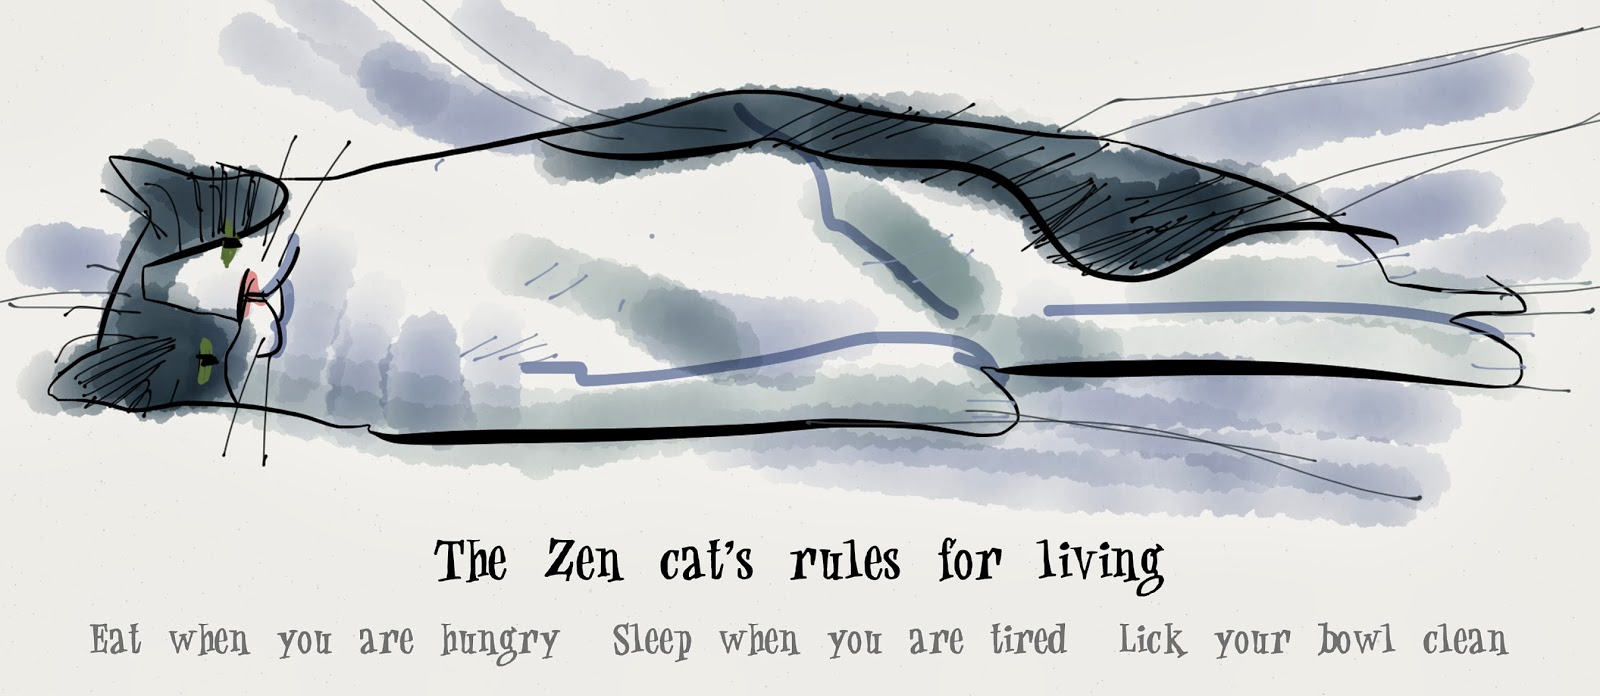 Zen cat's rules for living